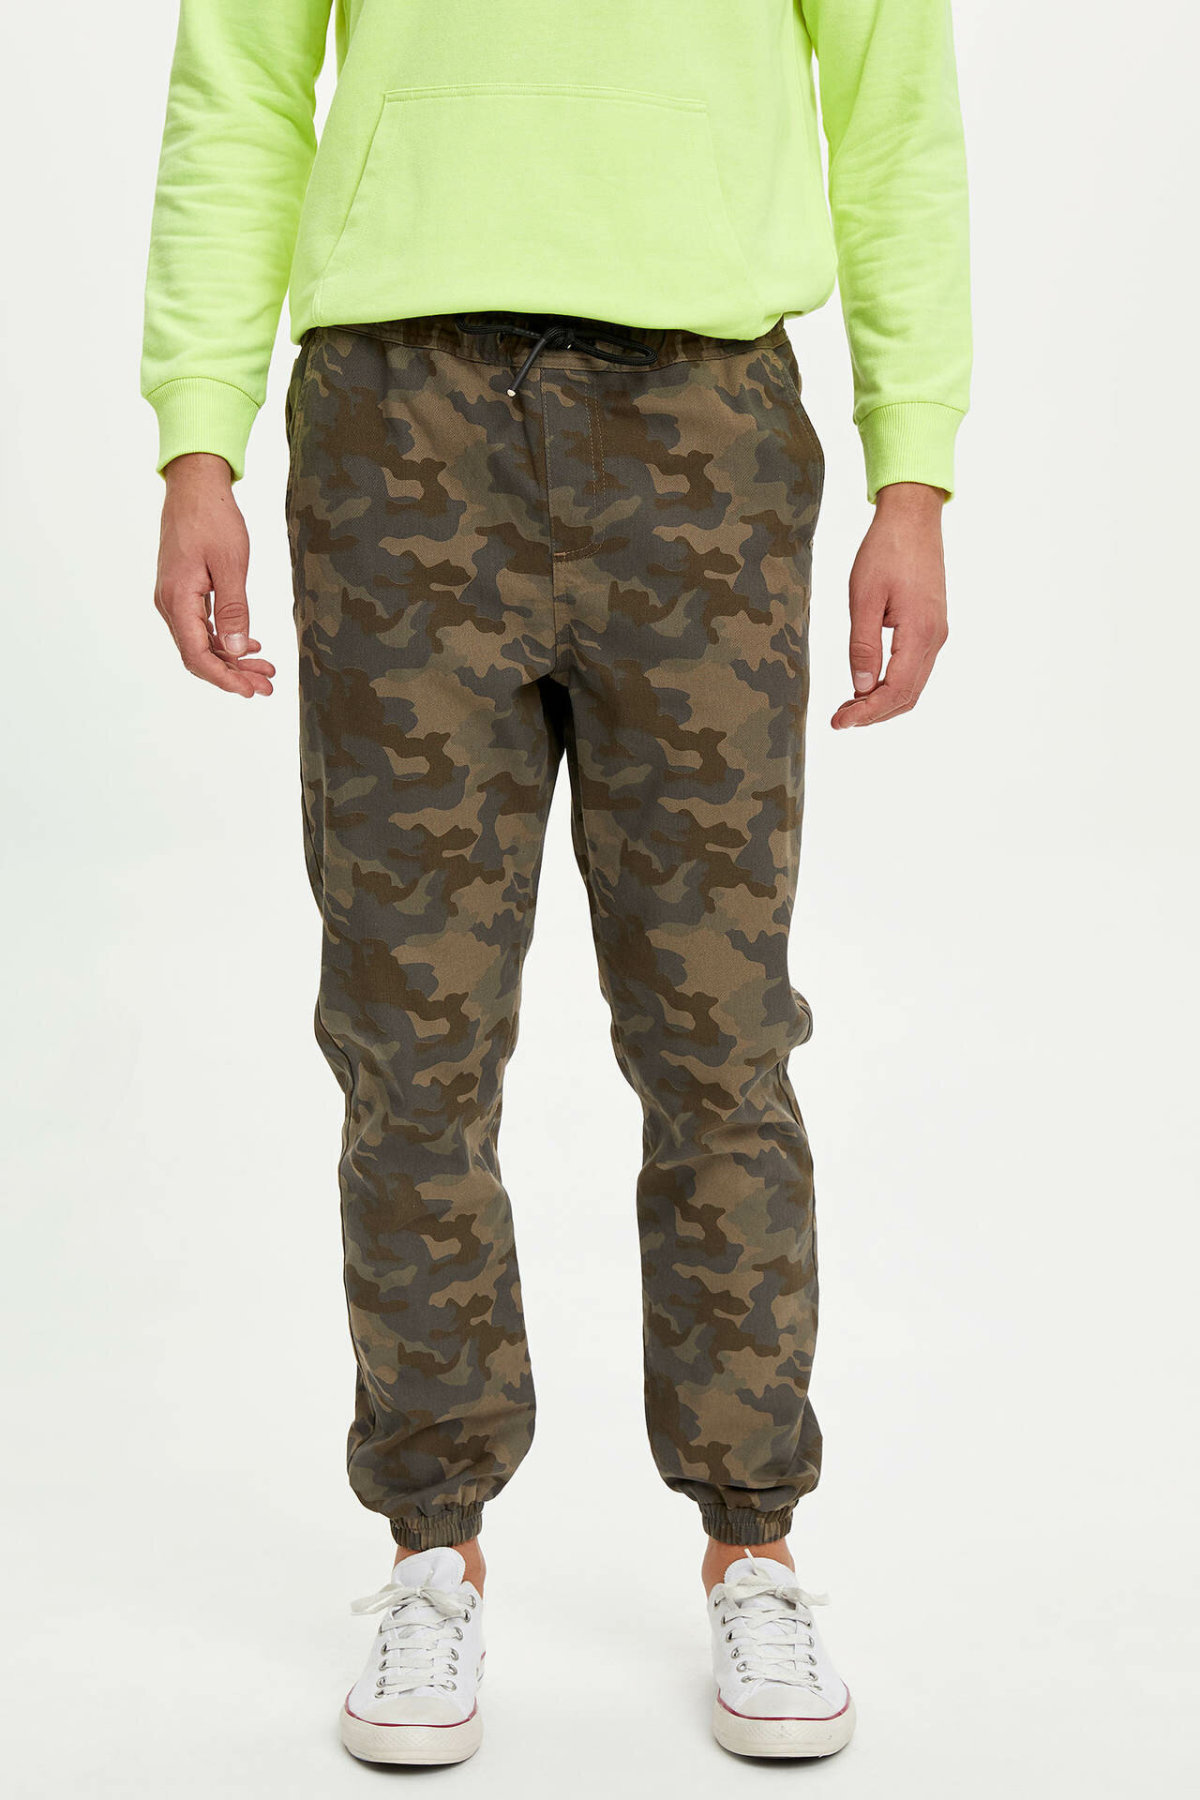 DeFacto Man Winter Army Green Camouflage Long Pants Men Casual Loose Bottoms Male Trousers-L7203AZ19WN